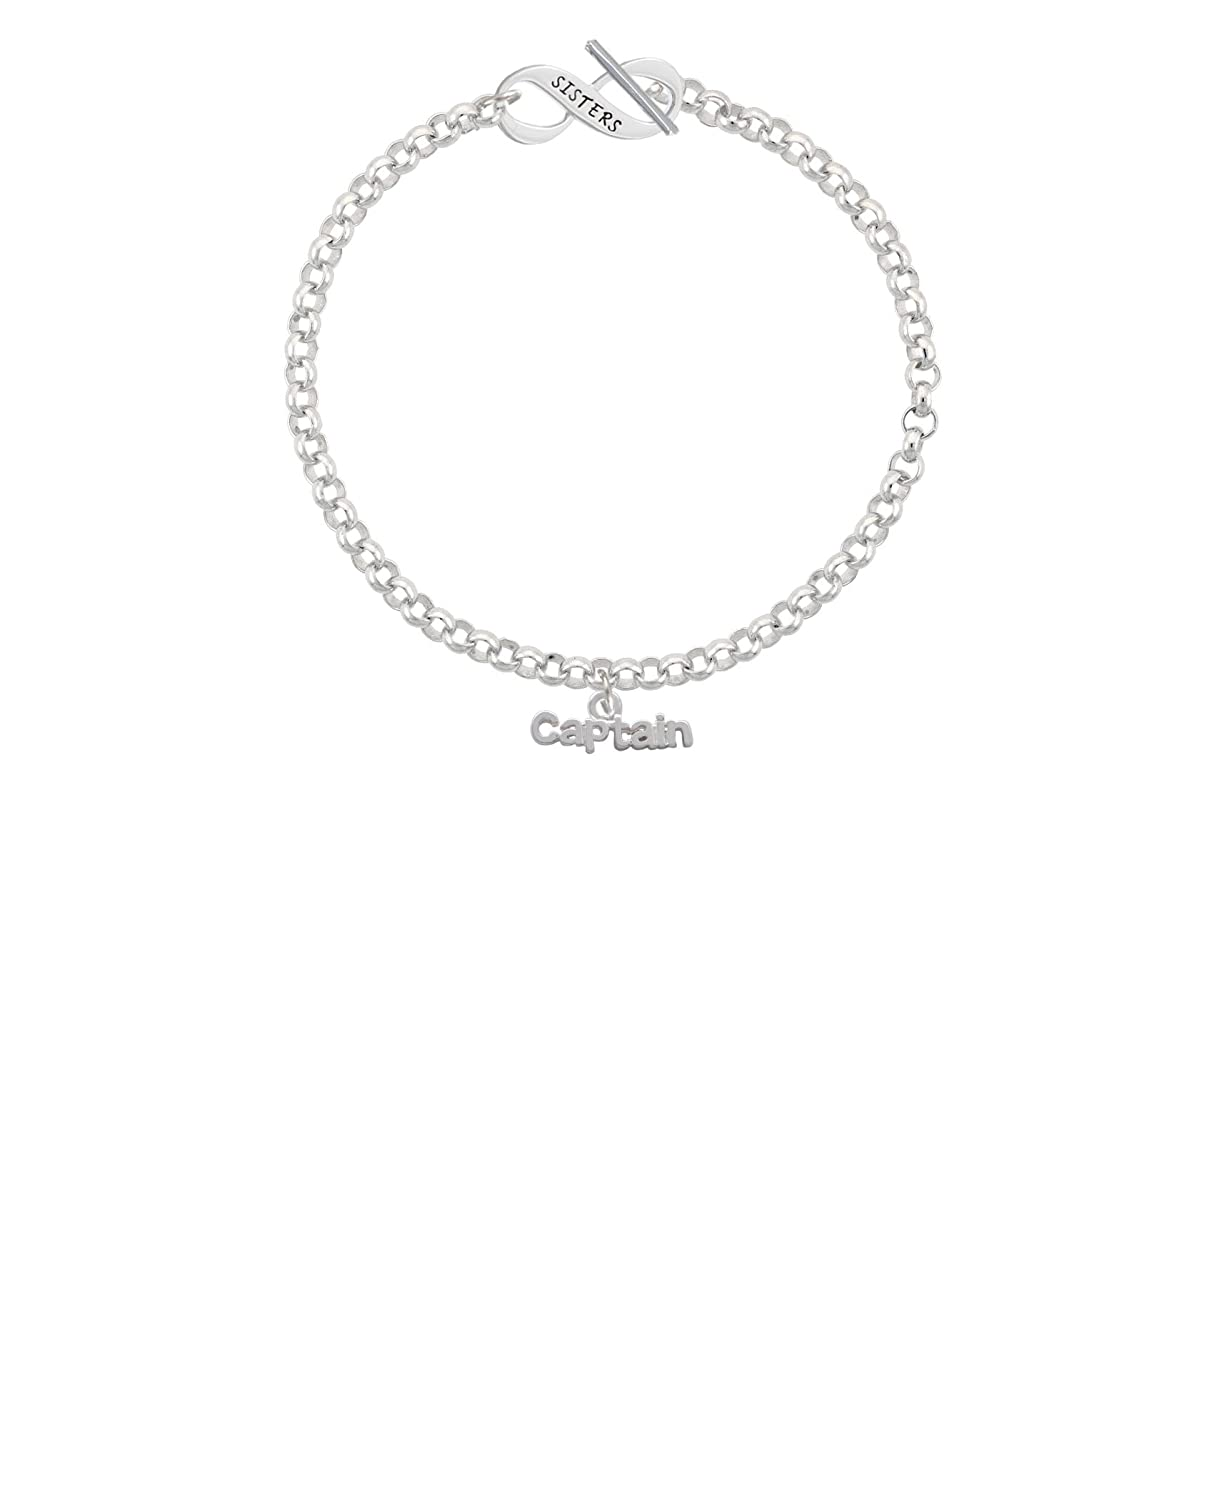 8 Silvertone Captain Sisters Infinity Toggle Chain Bracelet